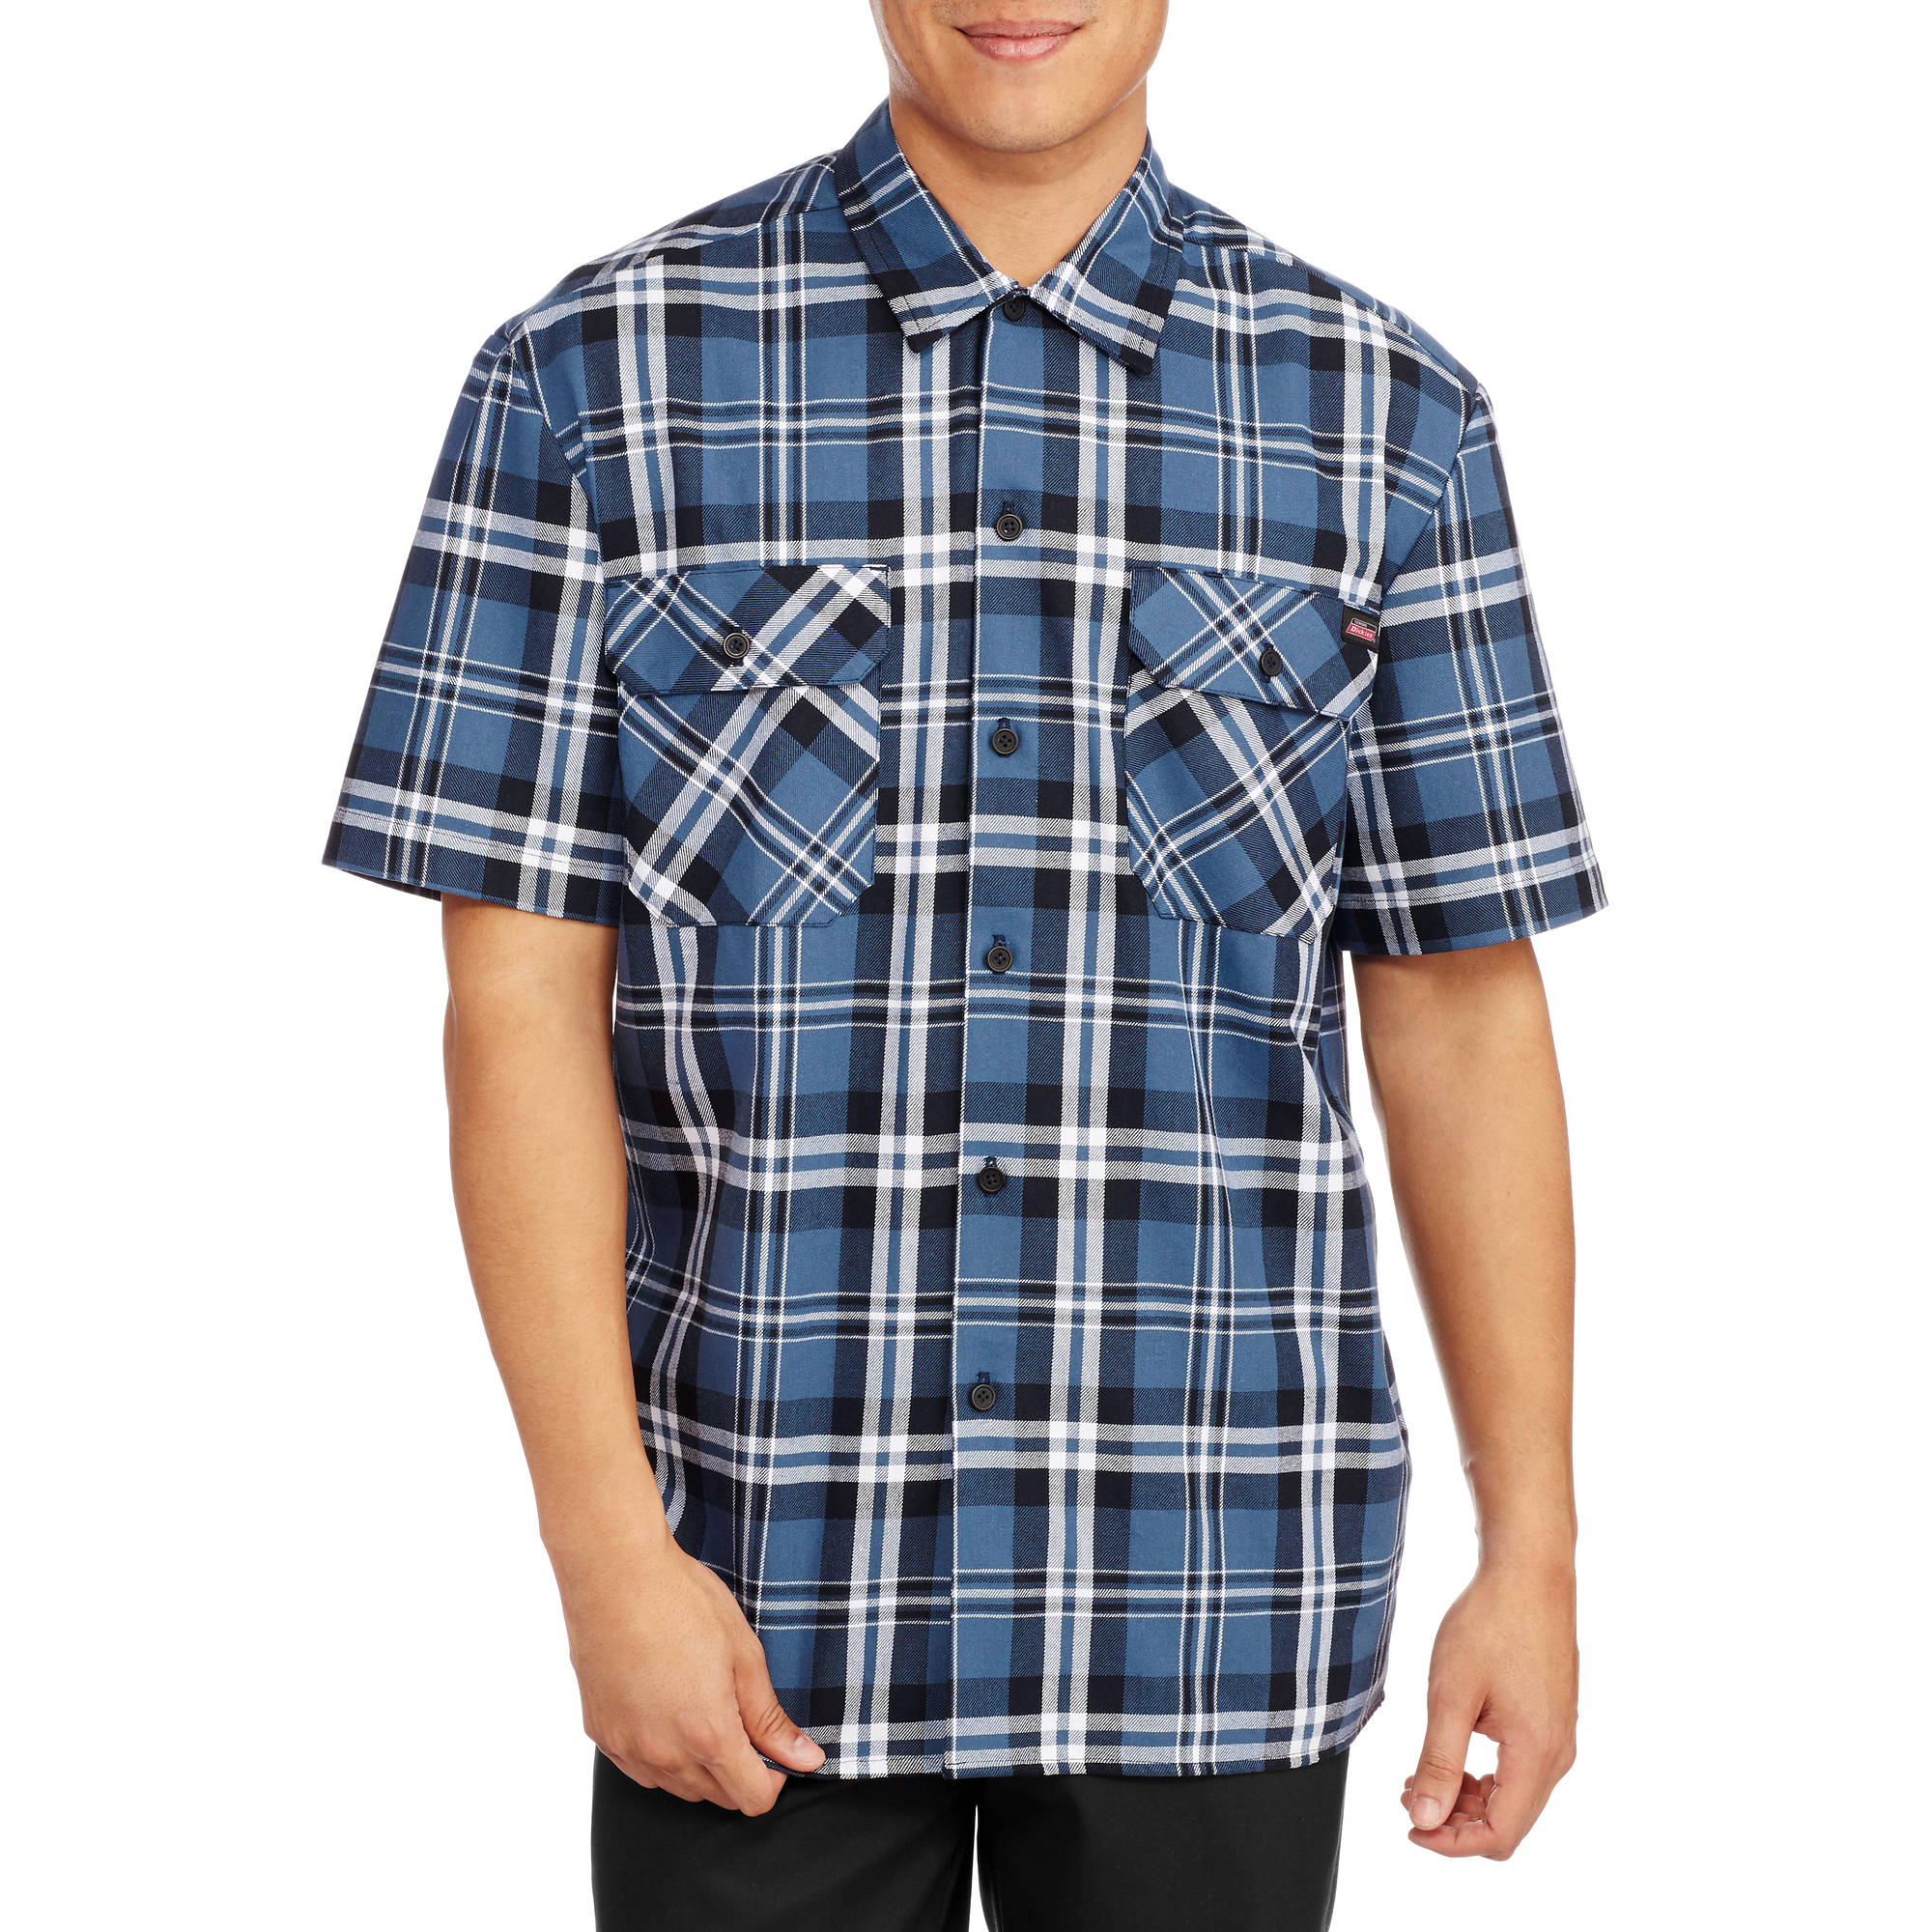 f1487ea16cda Dickies - Men s Short Sleeve Two Pocket Plaid Workshirt - Walmart.com